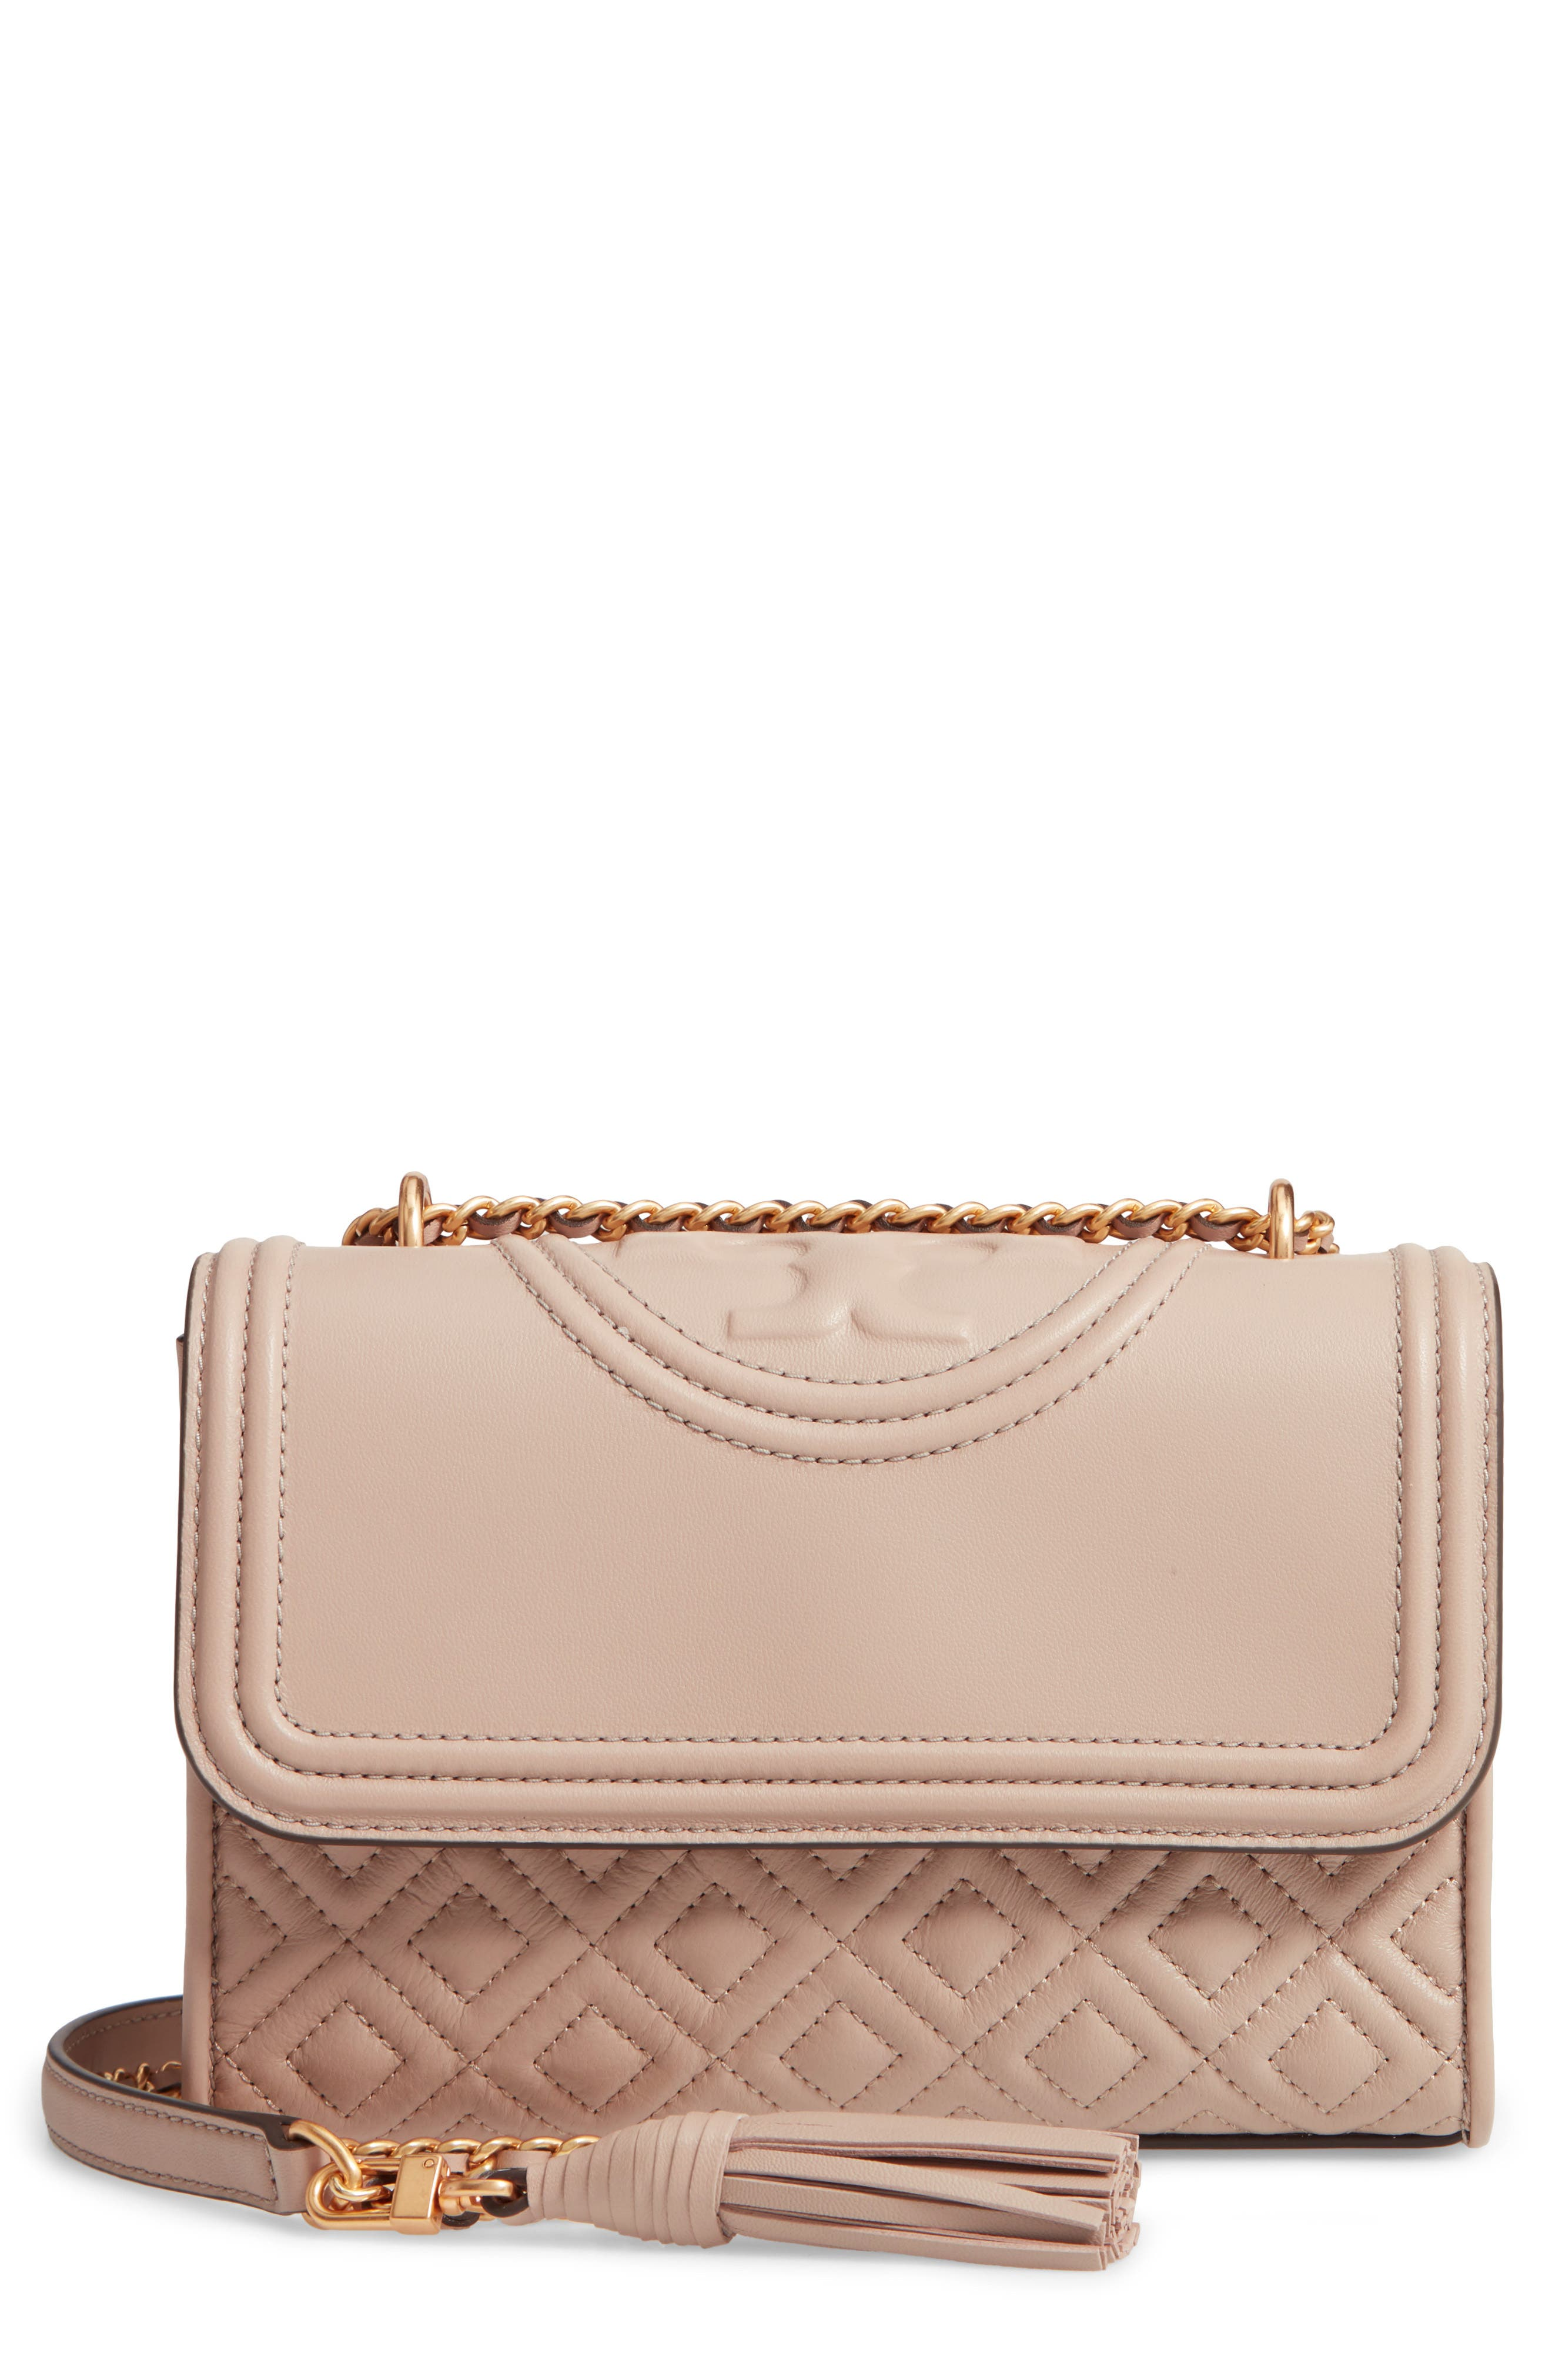 TORY BURCH, Small Fleming Leather Convertible Shoulder Bag, Main thumbnail 1, color, LIGHT TAUPE